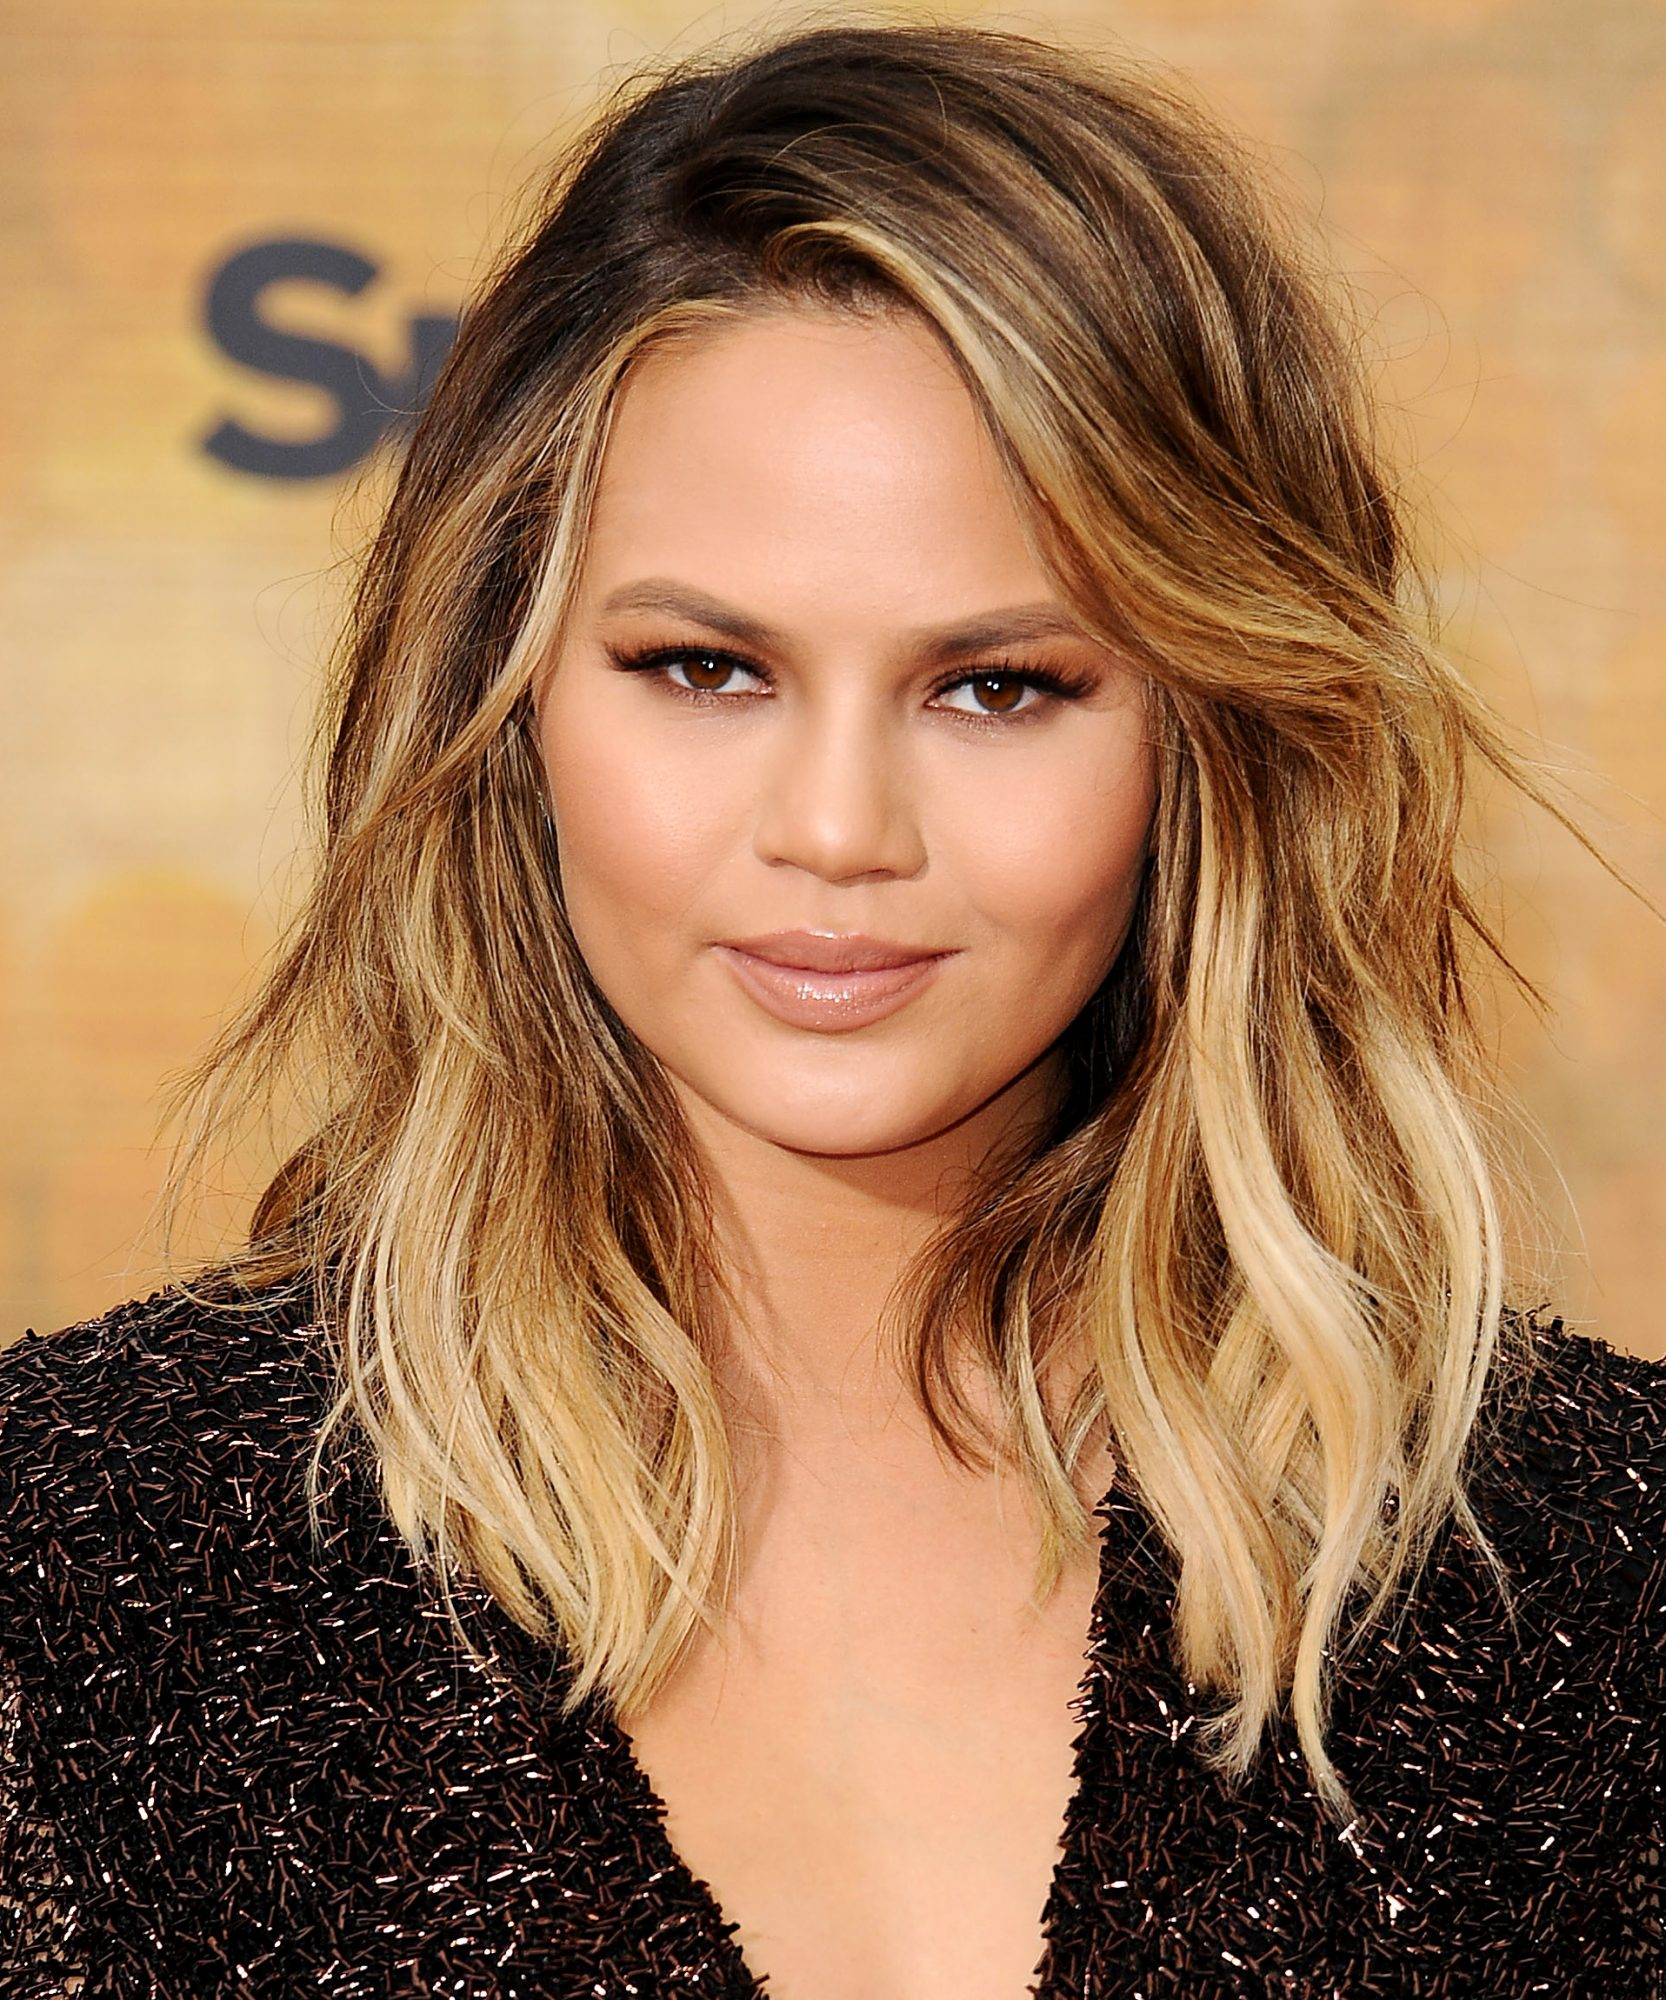 Chrissy Teigen's Sci-fi Braid Is All of The Hair Inspo